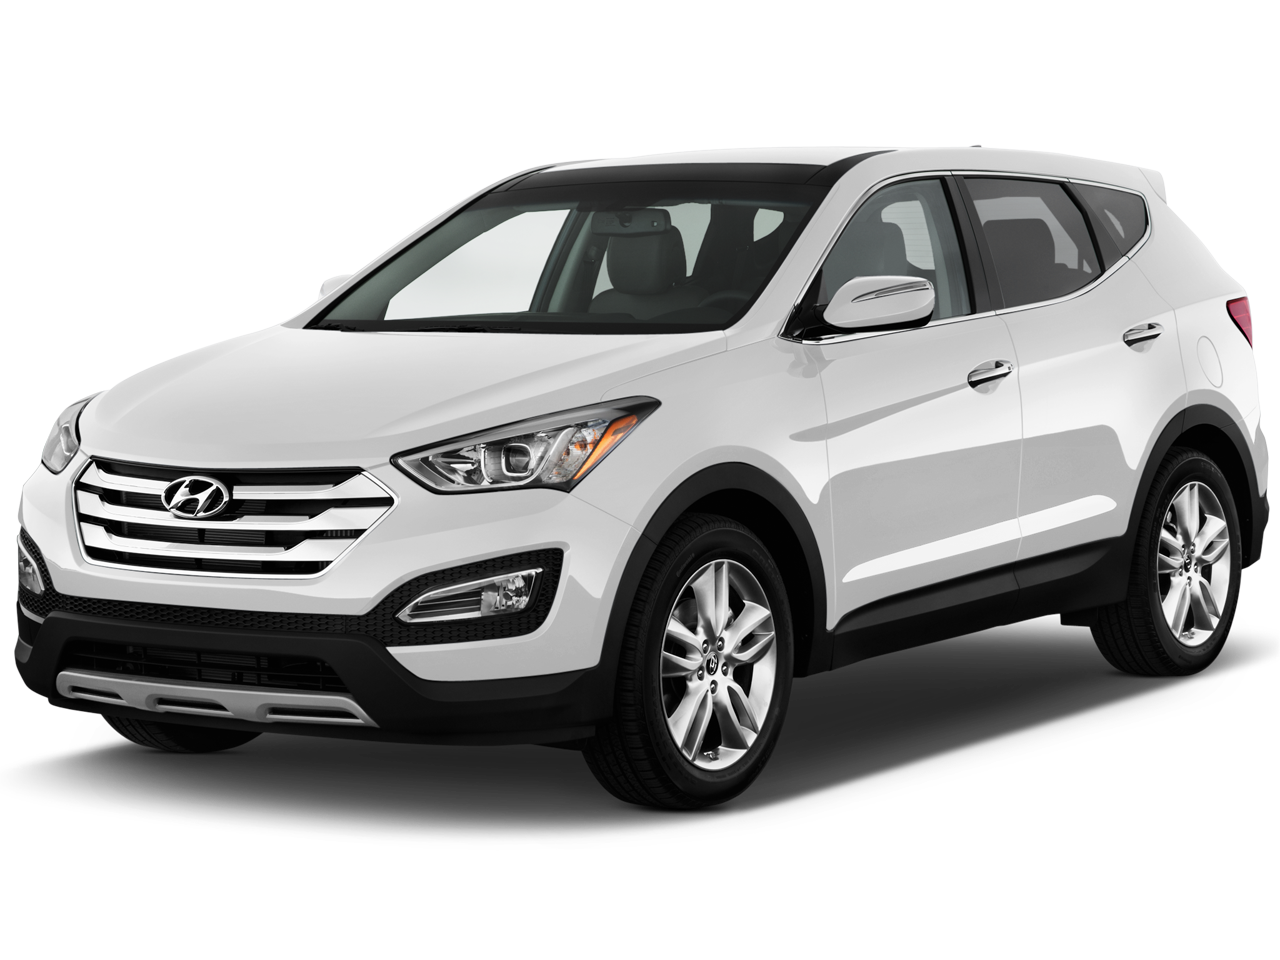 used one owner 2015 hyundai santa fe sport near woburn ma woburn toyota. Black Bedroom Furniture Sets. Home Design Ideas